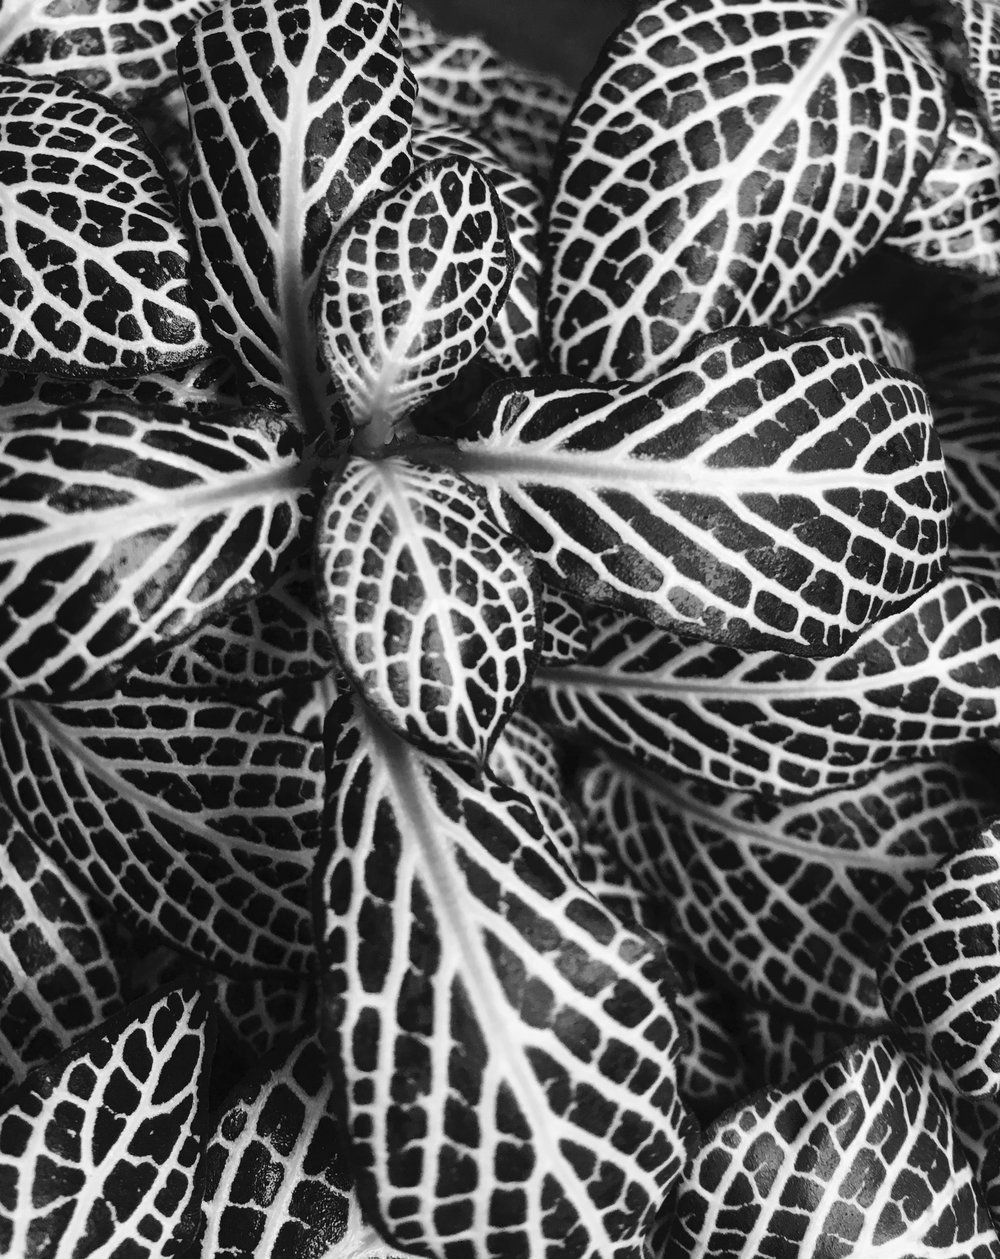 Leaf pattern © Naida Ginnane 2018, iPhone 6, Camera on 'Mono' setting.  The contrasting patterns on the leaves of this plant create a great design element in black and white. Without the usual green tones, the image could be anything.